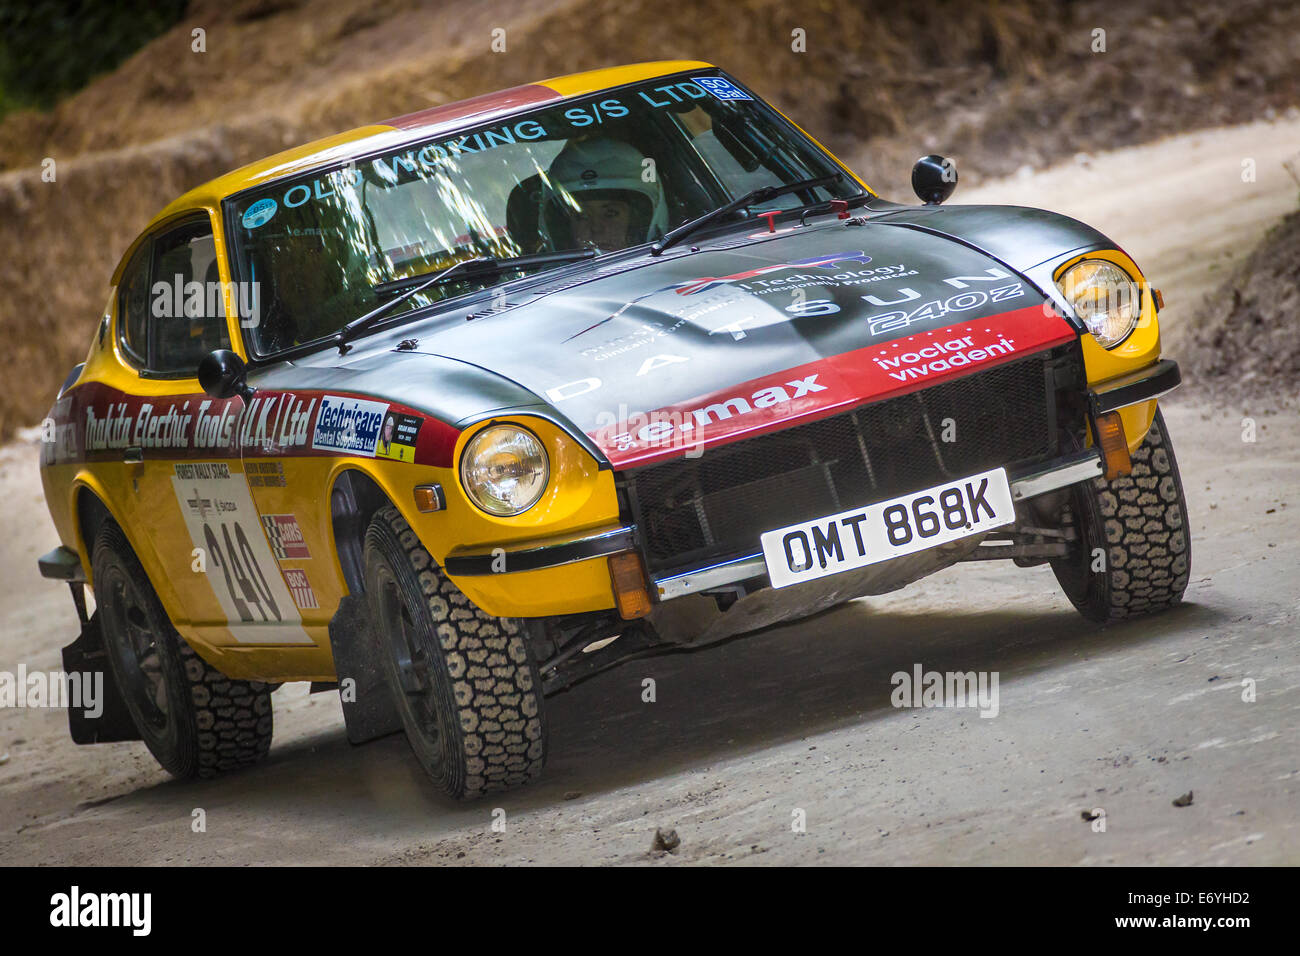 Datsun 240z stock photos datsun 240z stock images alamy 1972 datsun 240z with driver kevin bristow at the 2014 goodwood festival of speed sussex vanachro Gallery